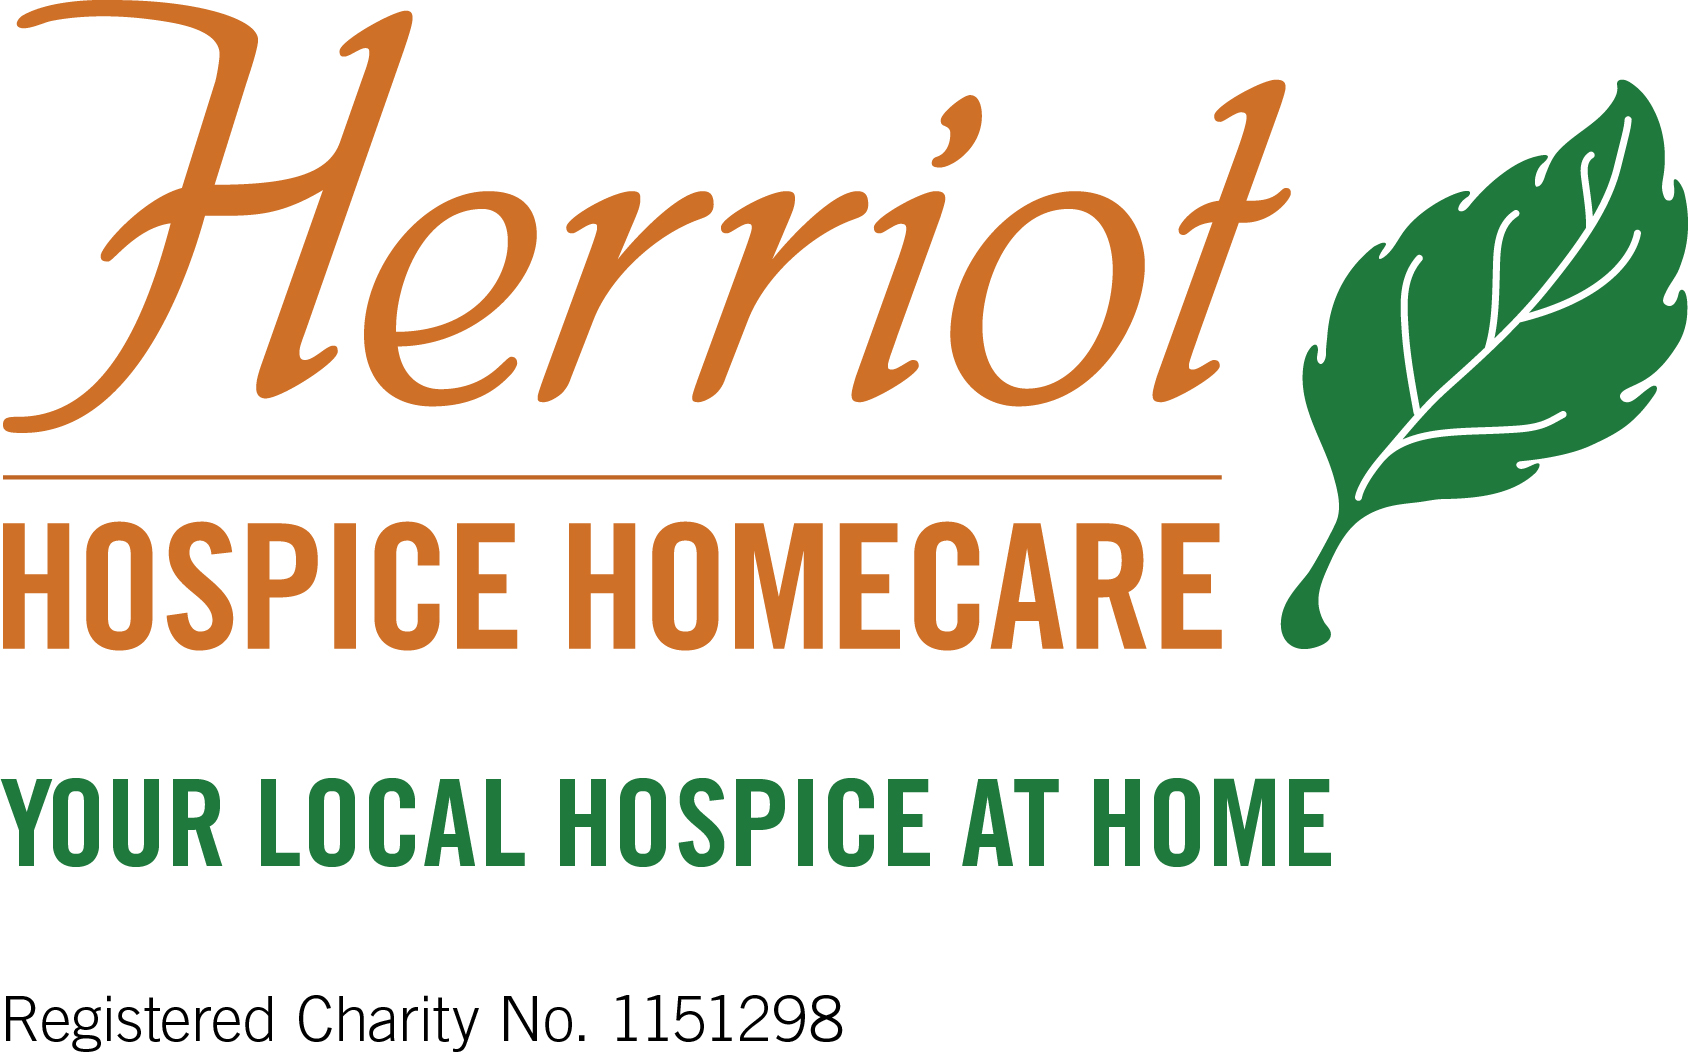 Herriot logo